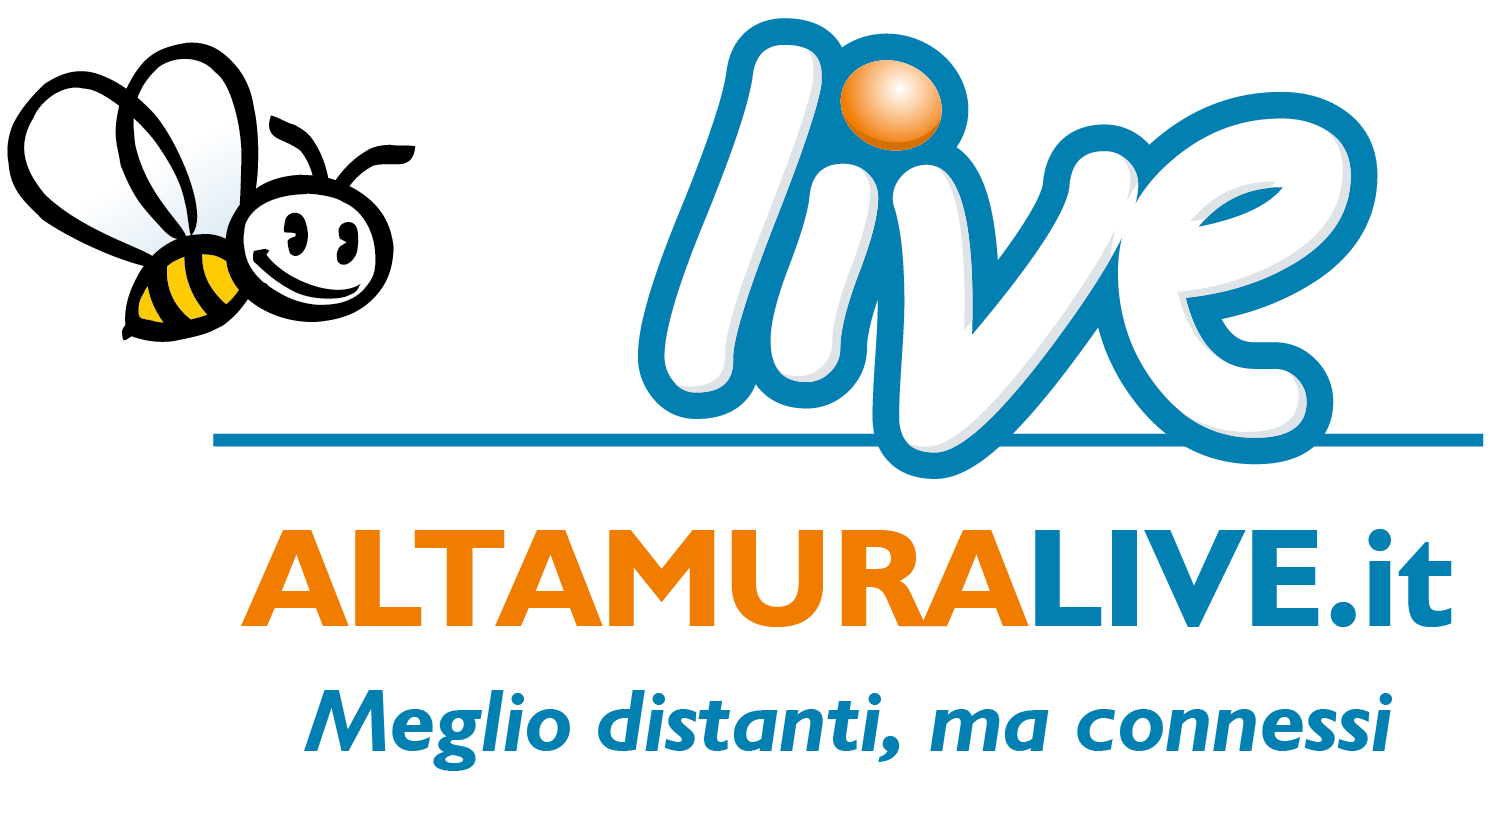 AltamuraLive.it